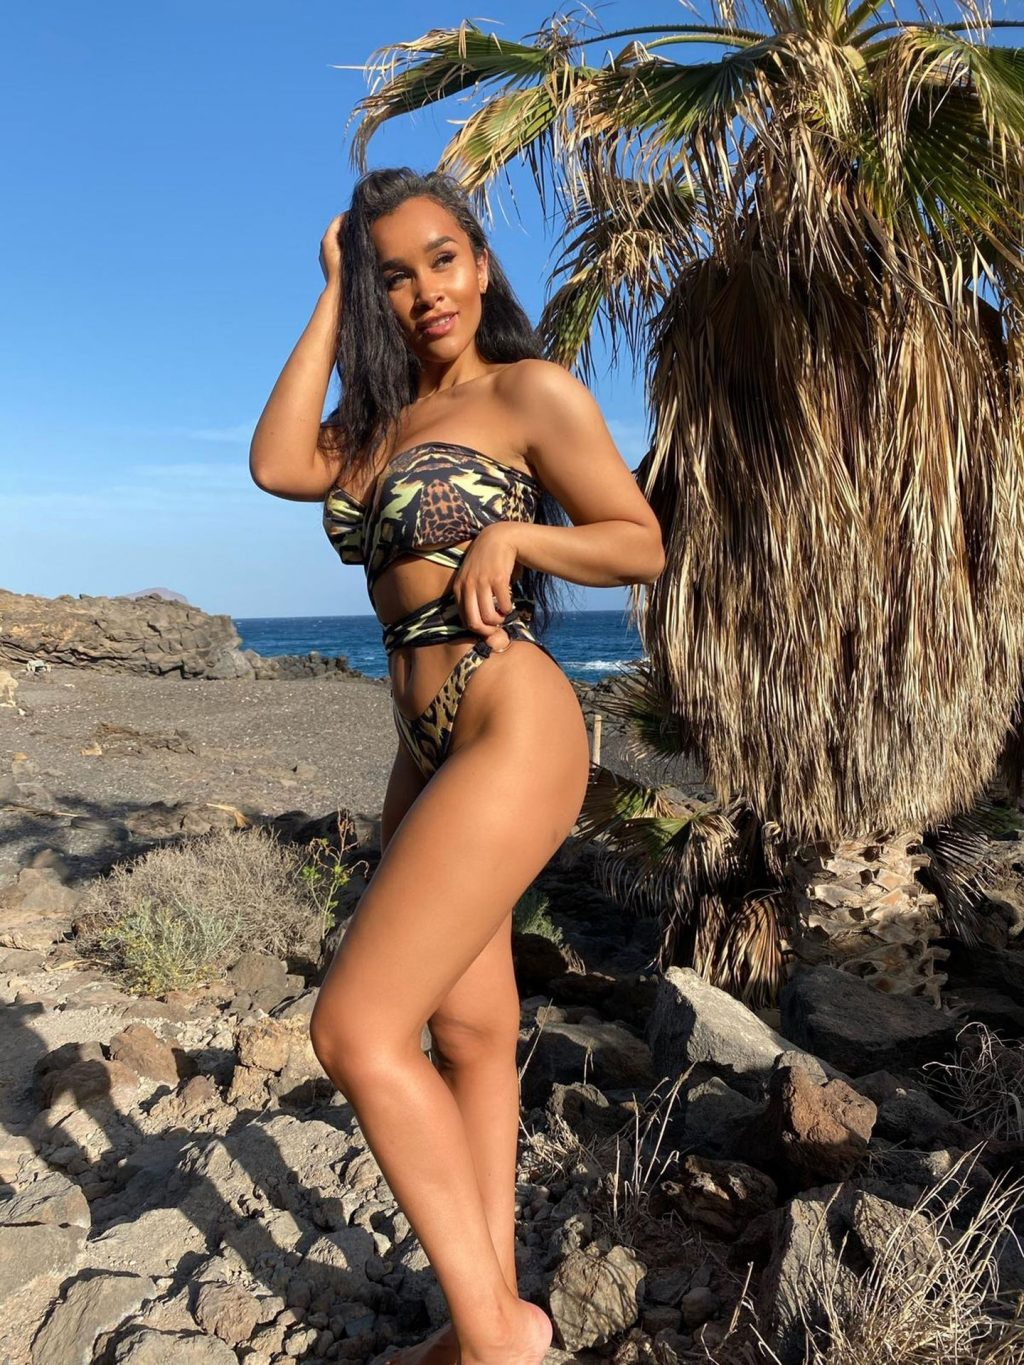 Sian Gabbidon Gets the Pulses Racing by Showcasing Her New Swimwear Collection (16 Photos)